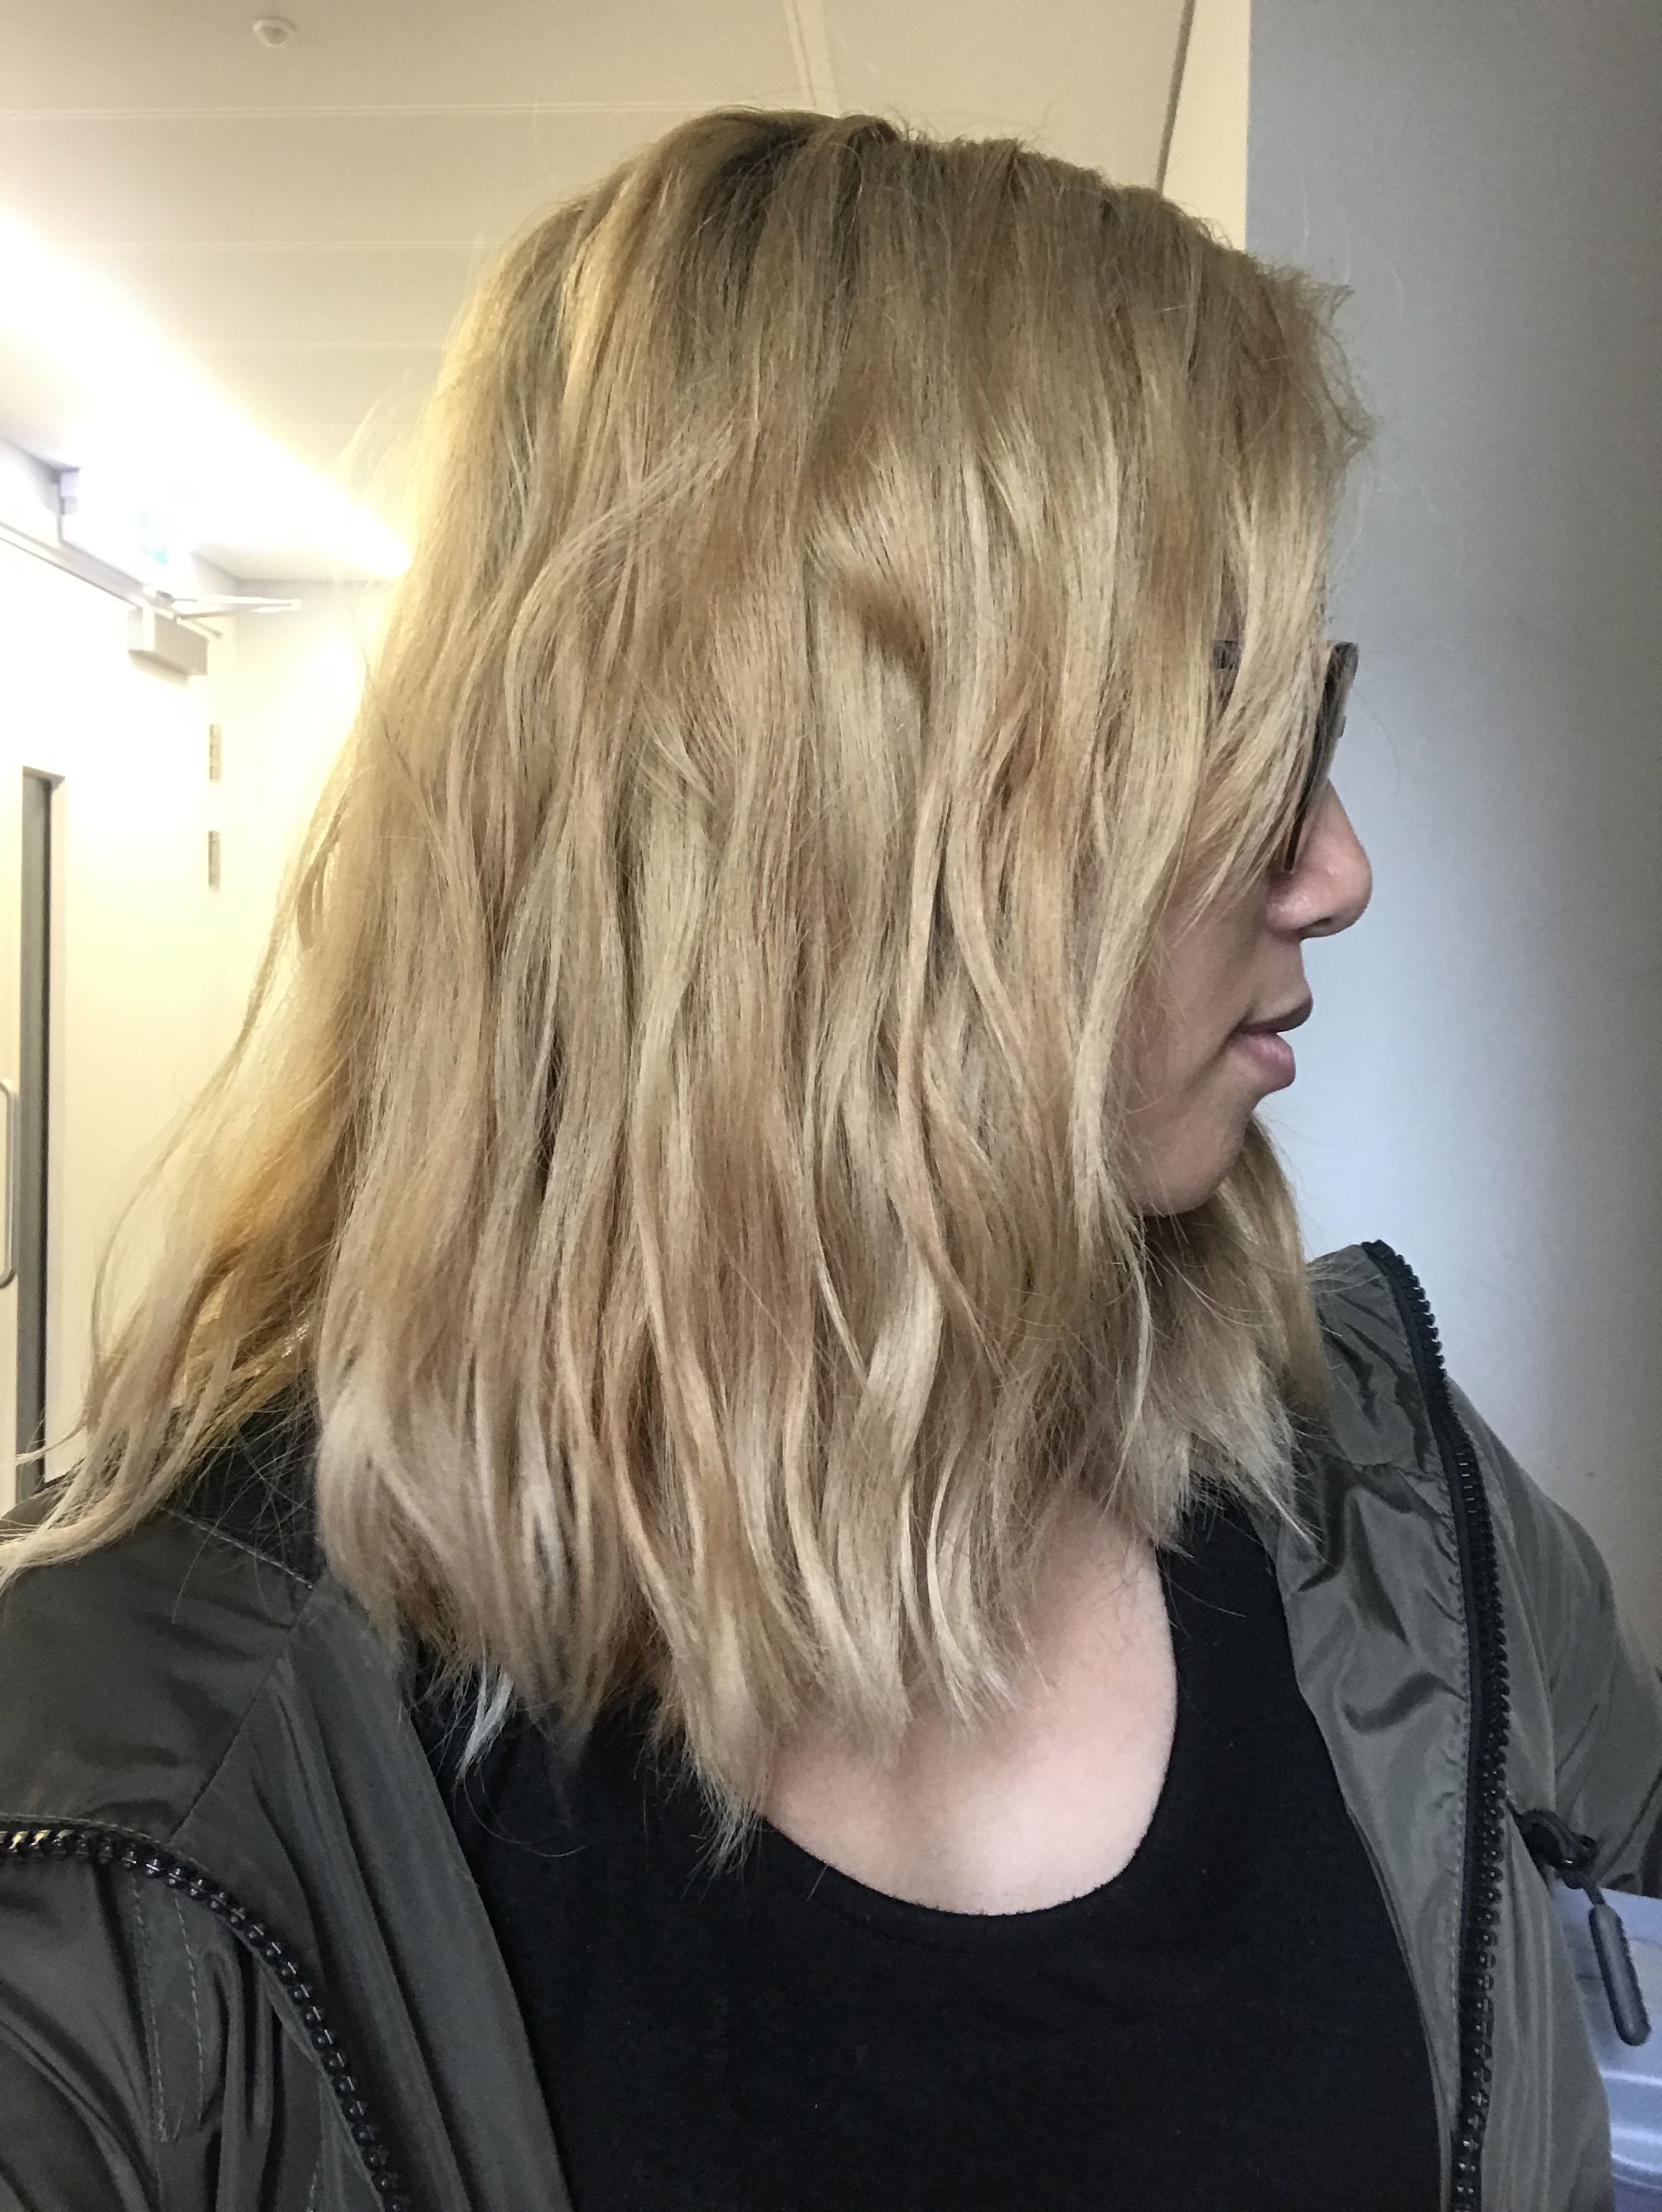 The Greenwich Mummy Blog | Wavy 2A haircare routine